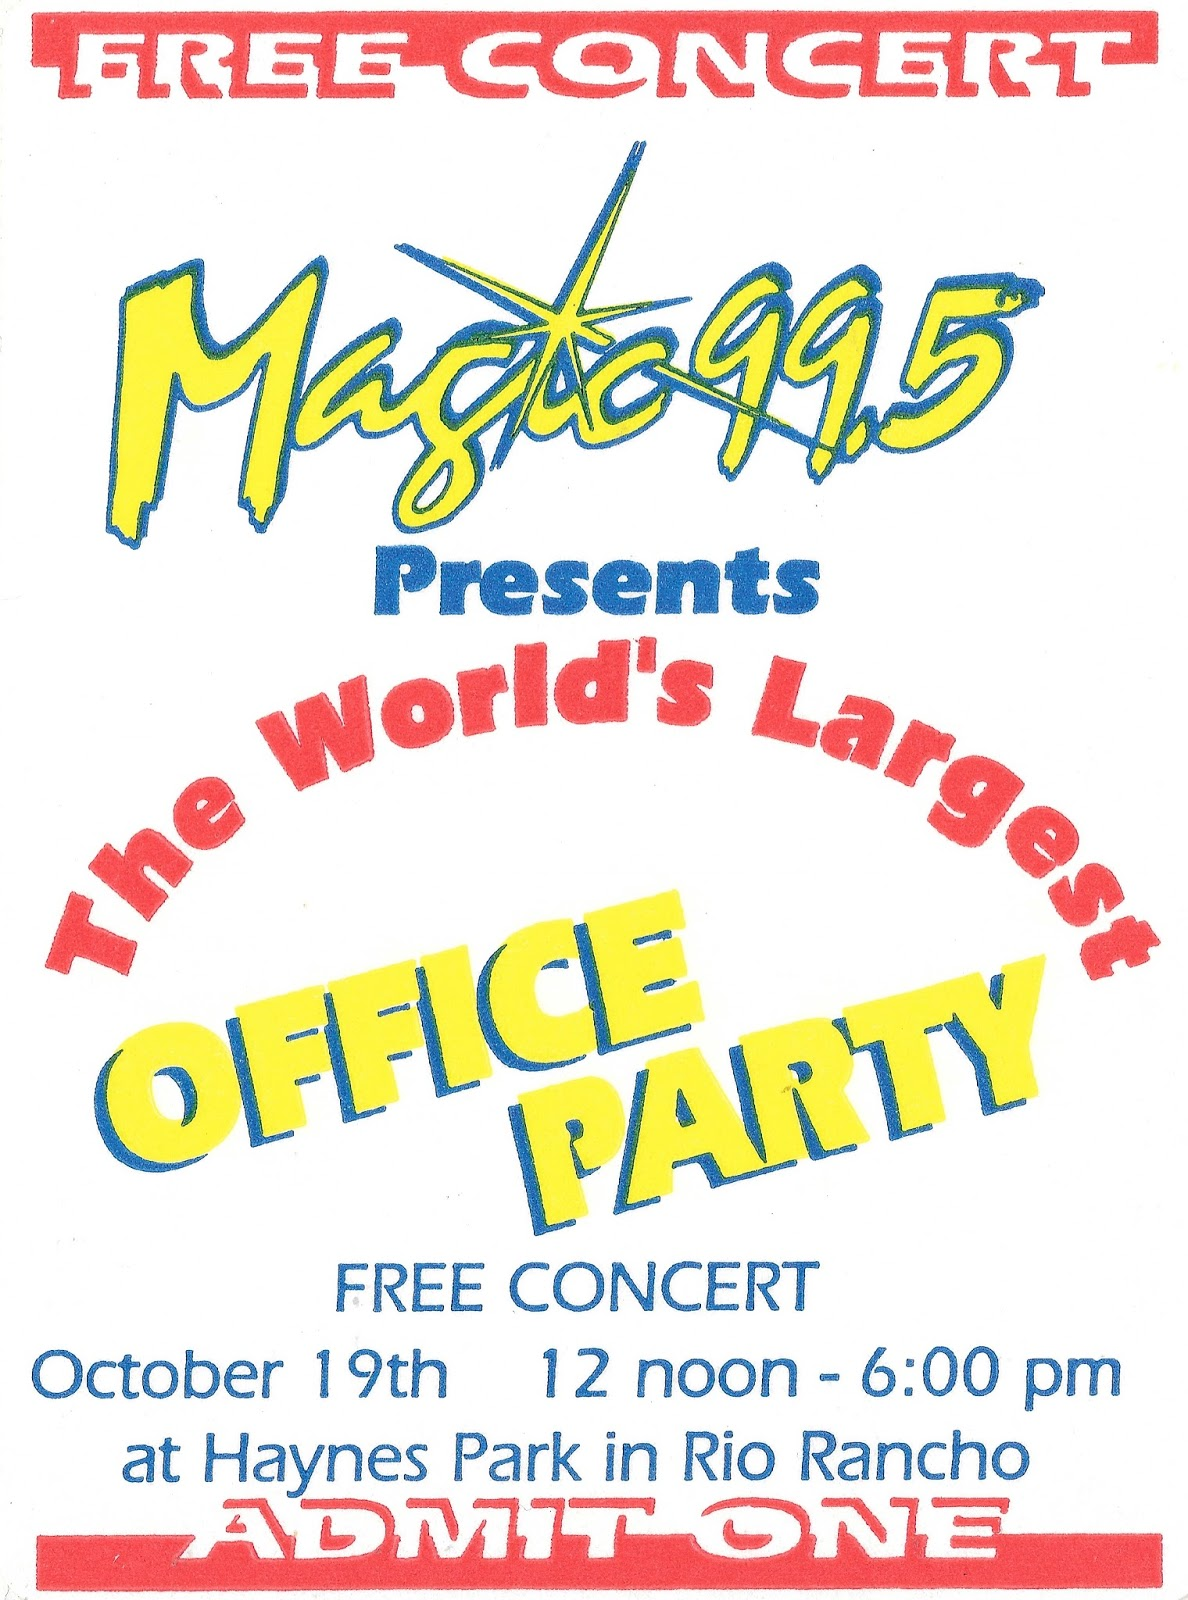 995 Magic FM KMGA Is An Adult Contemporary Station In Albuquerque New Mexico